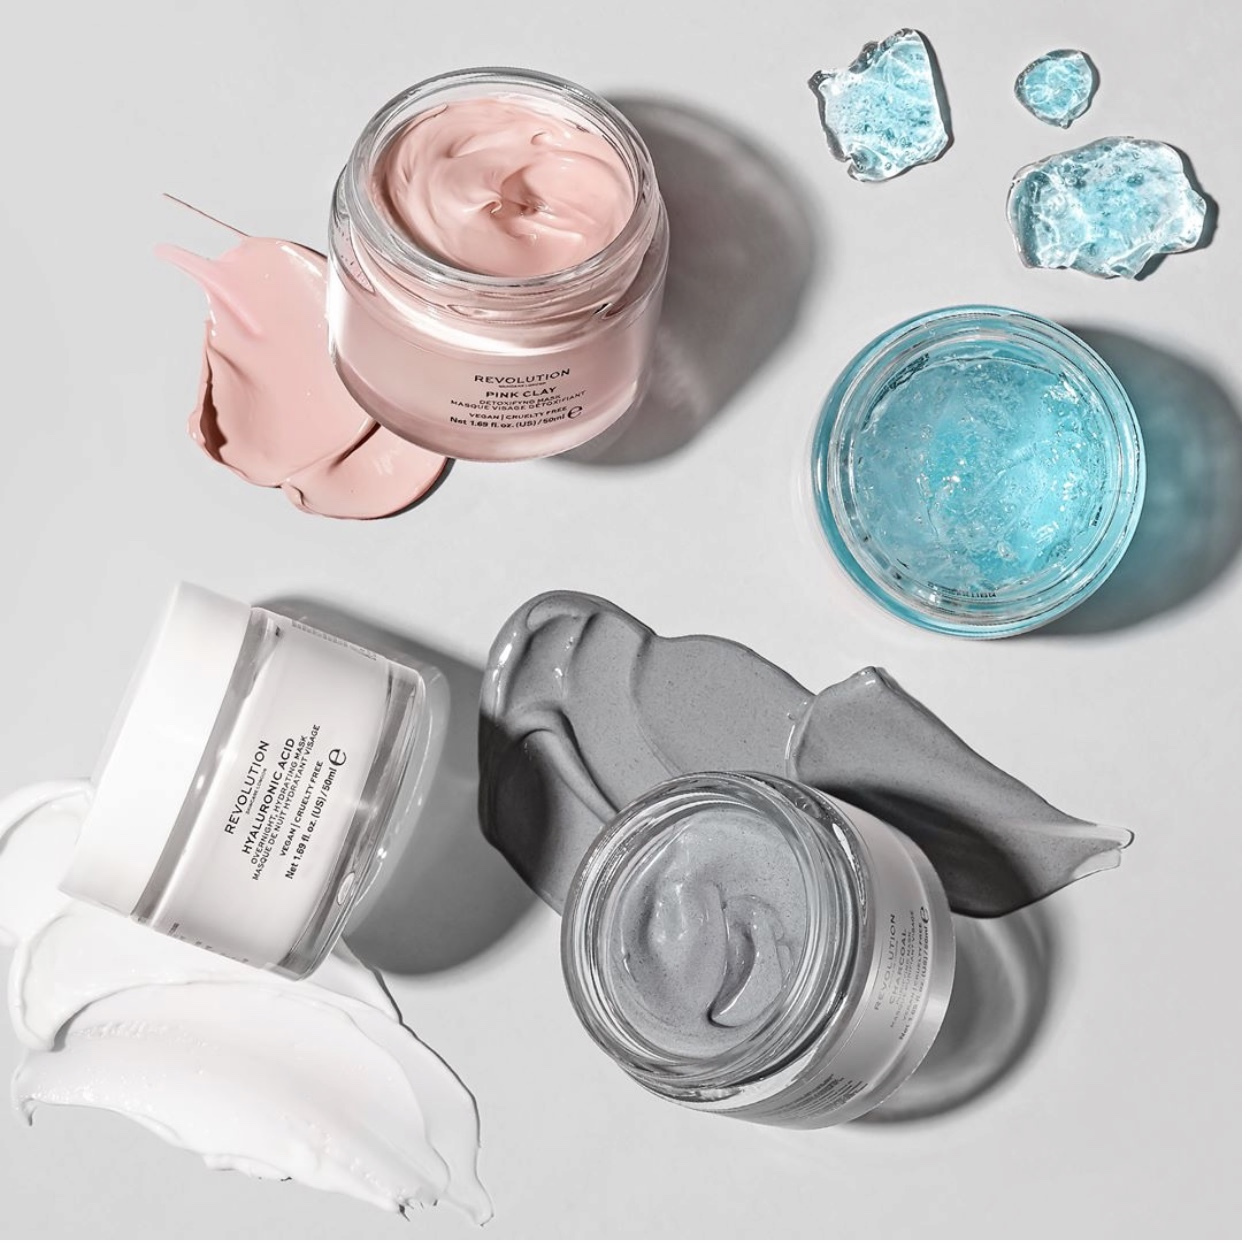 Kylie Jenners First Skin-Care Products Revealed — See All